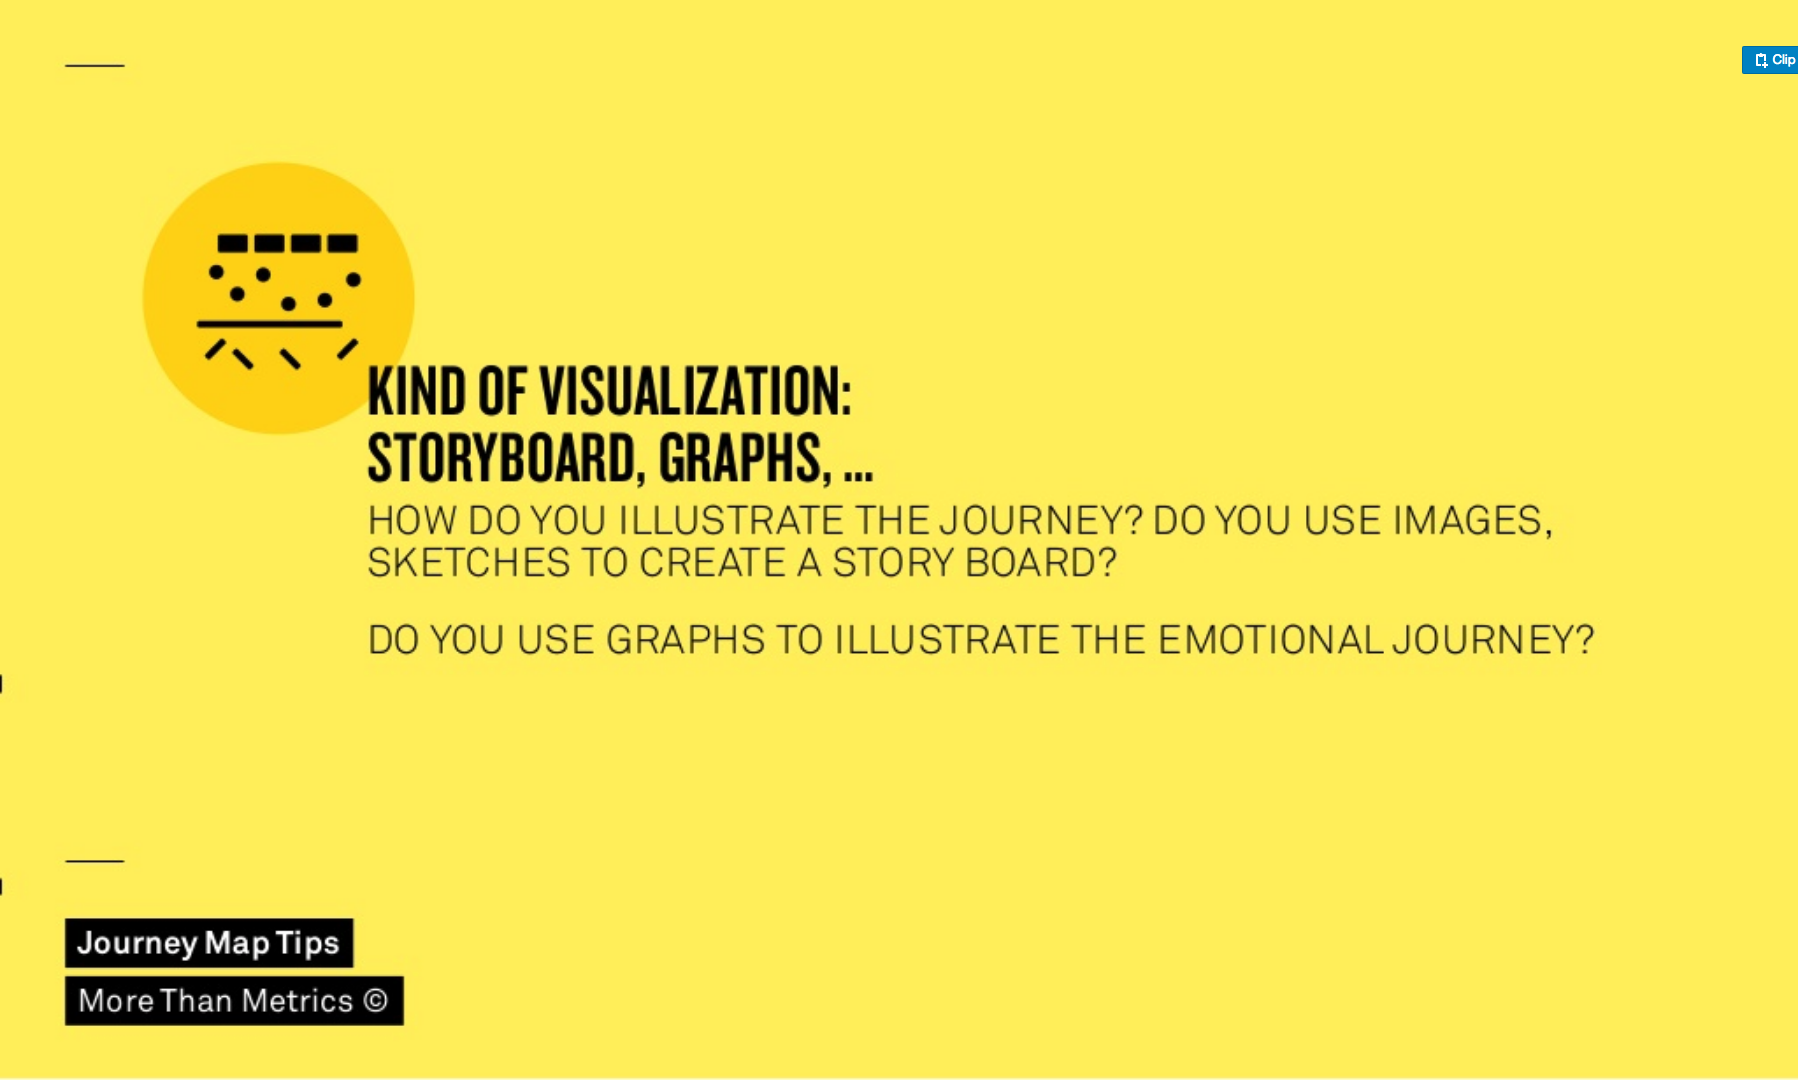 You can use images, skethces or graphs to better visualize you customer journey.